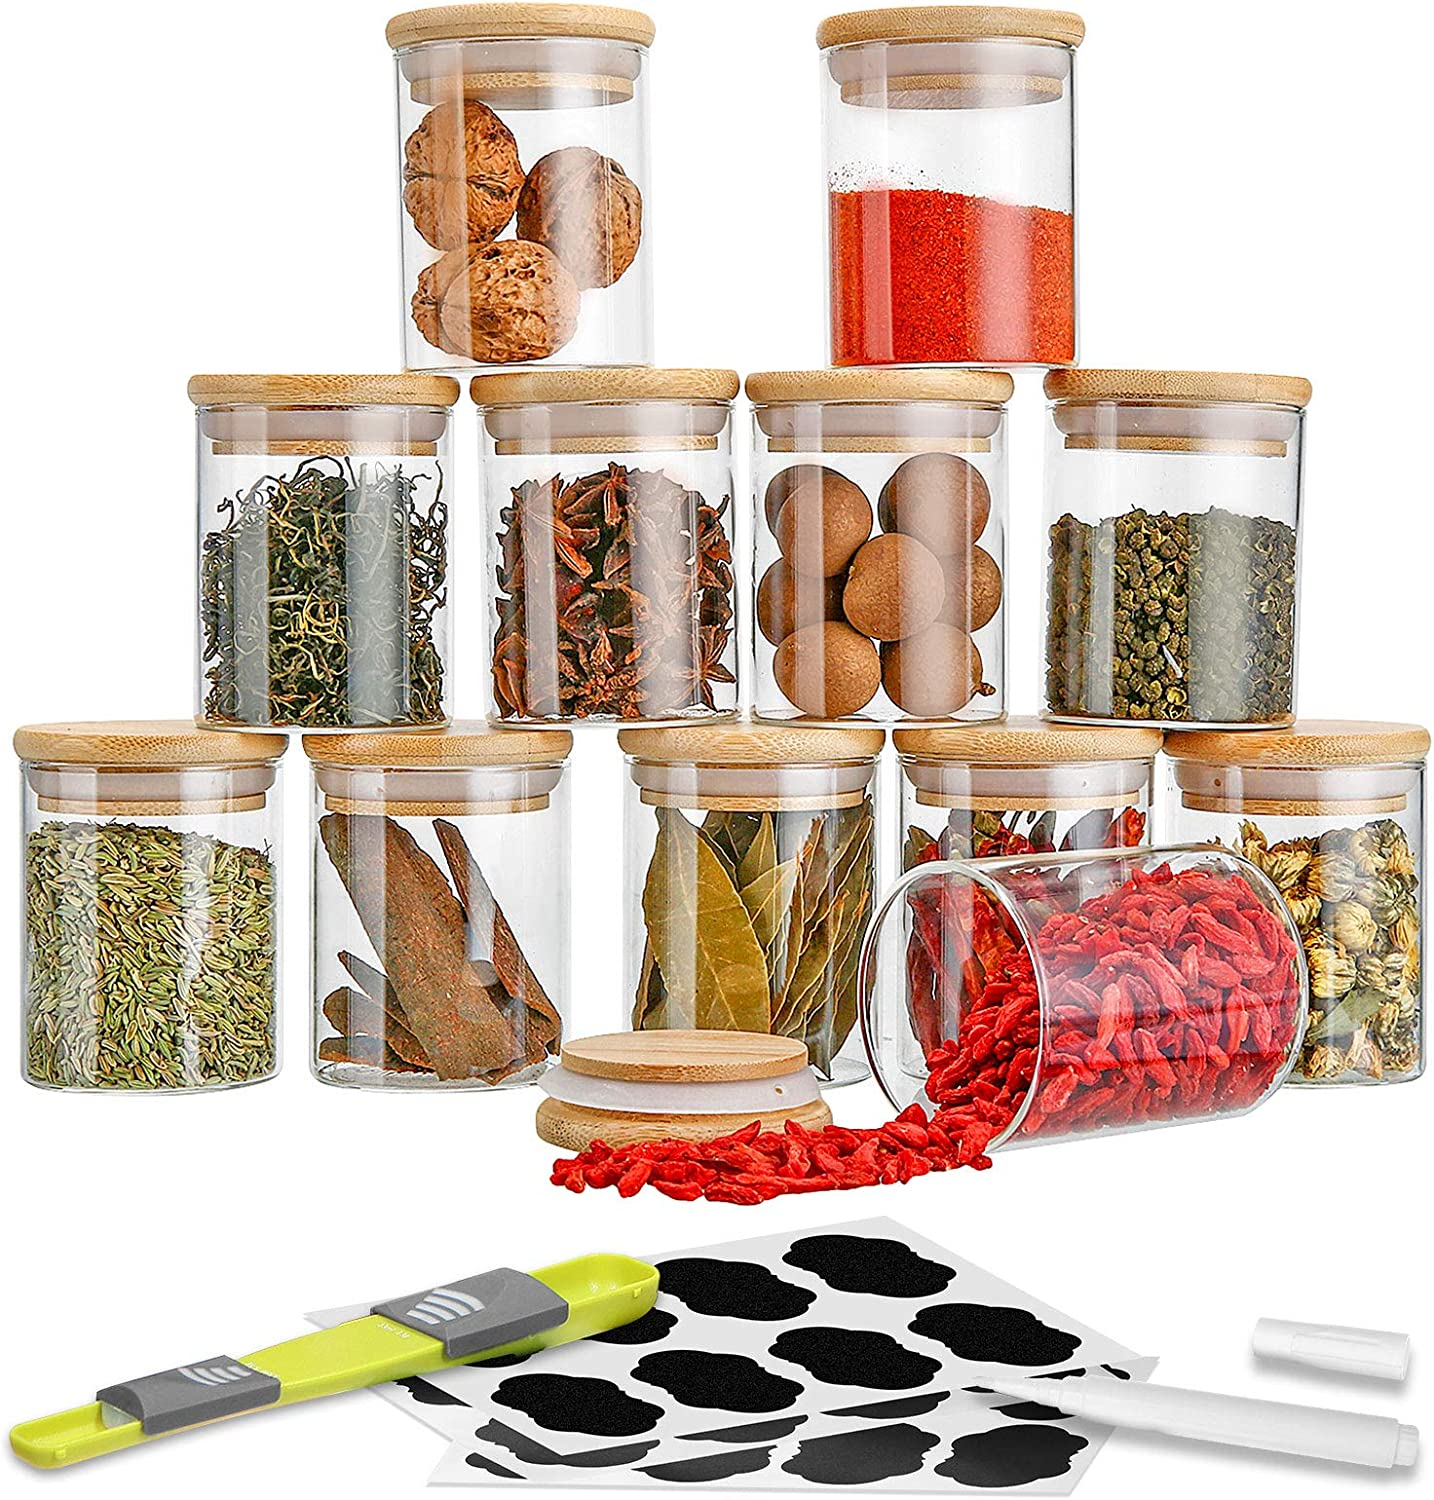 SAWAKE Glass Canisters Set for Kitchen Counter 6.7oz, 12 Piece Clear Glass Food Storage Jars with Airtight Bamboo Lids for Spice, Tea, Herbs, Candy, Nuts - include Measuring Spoon, Labels & Marker